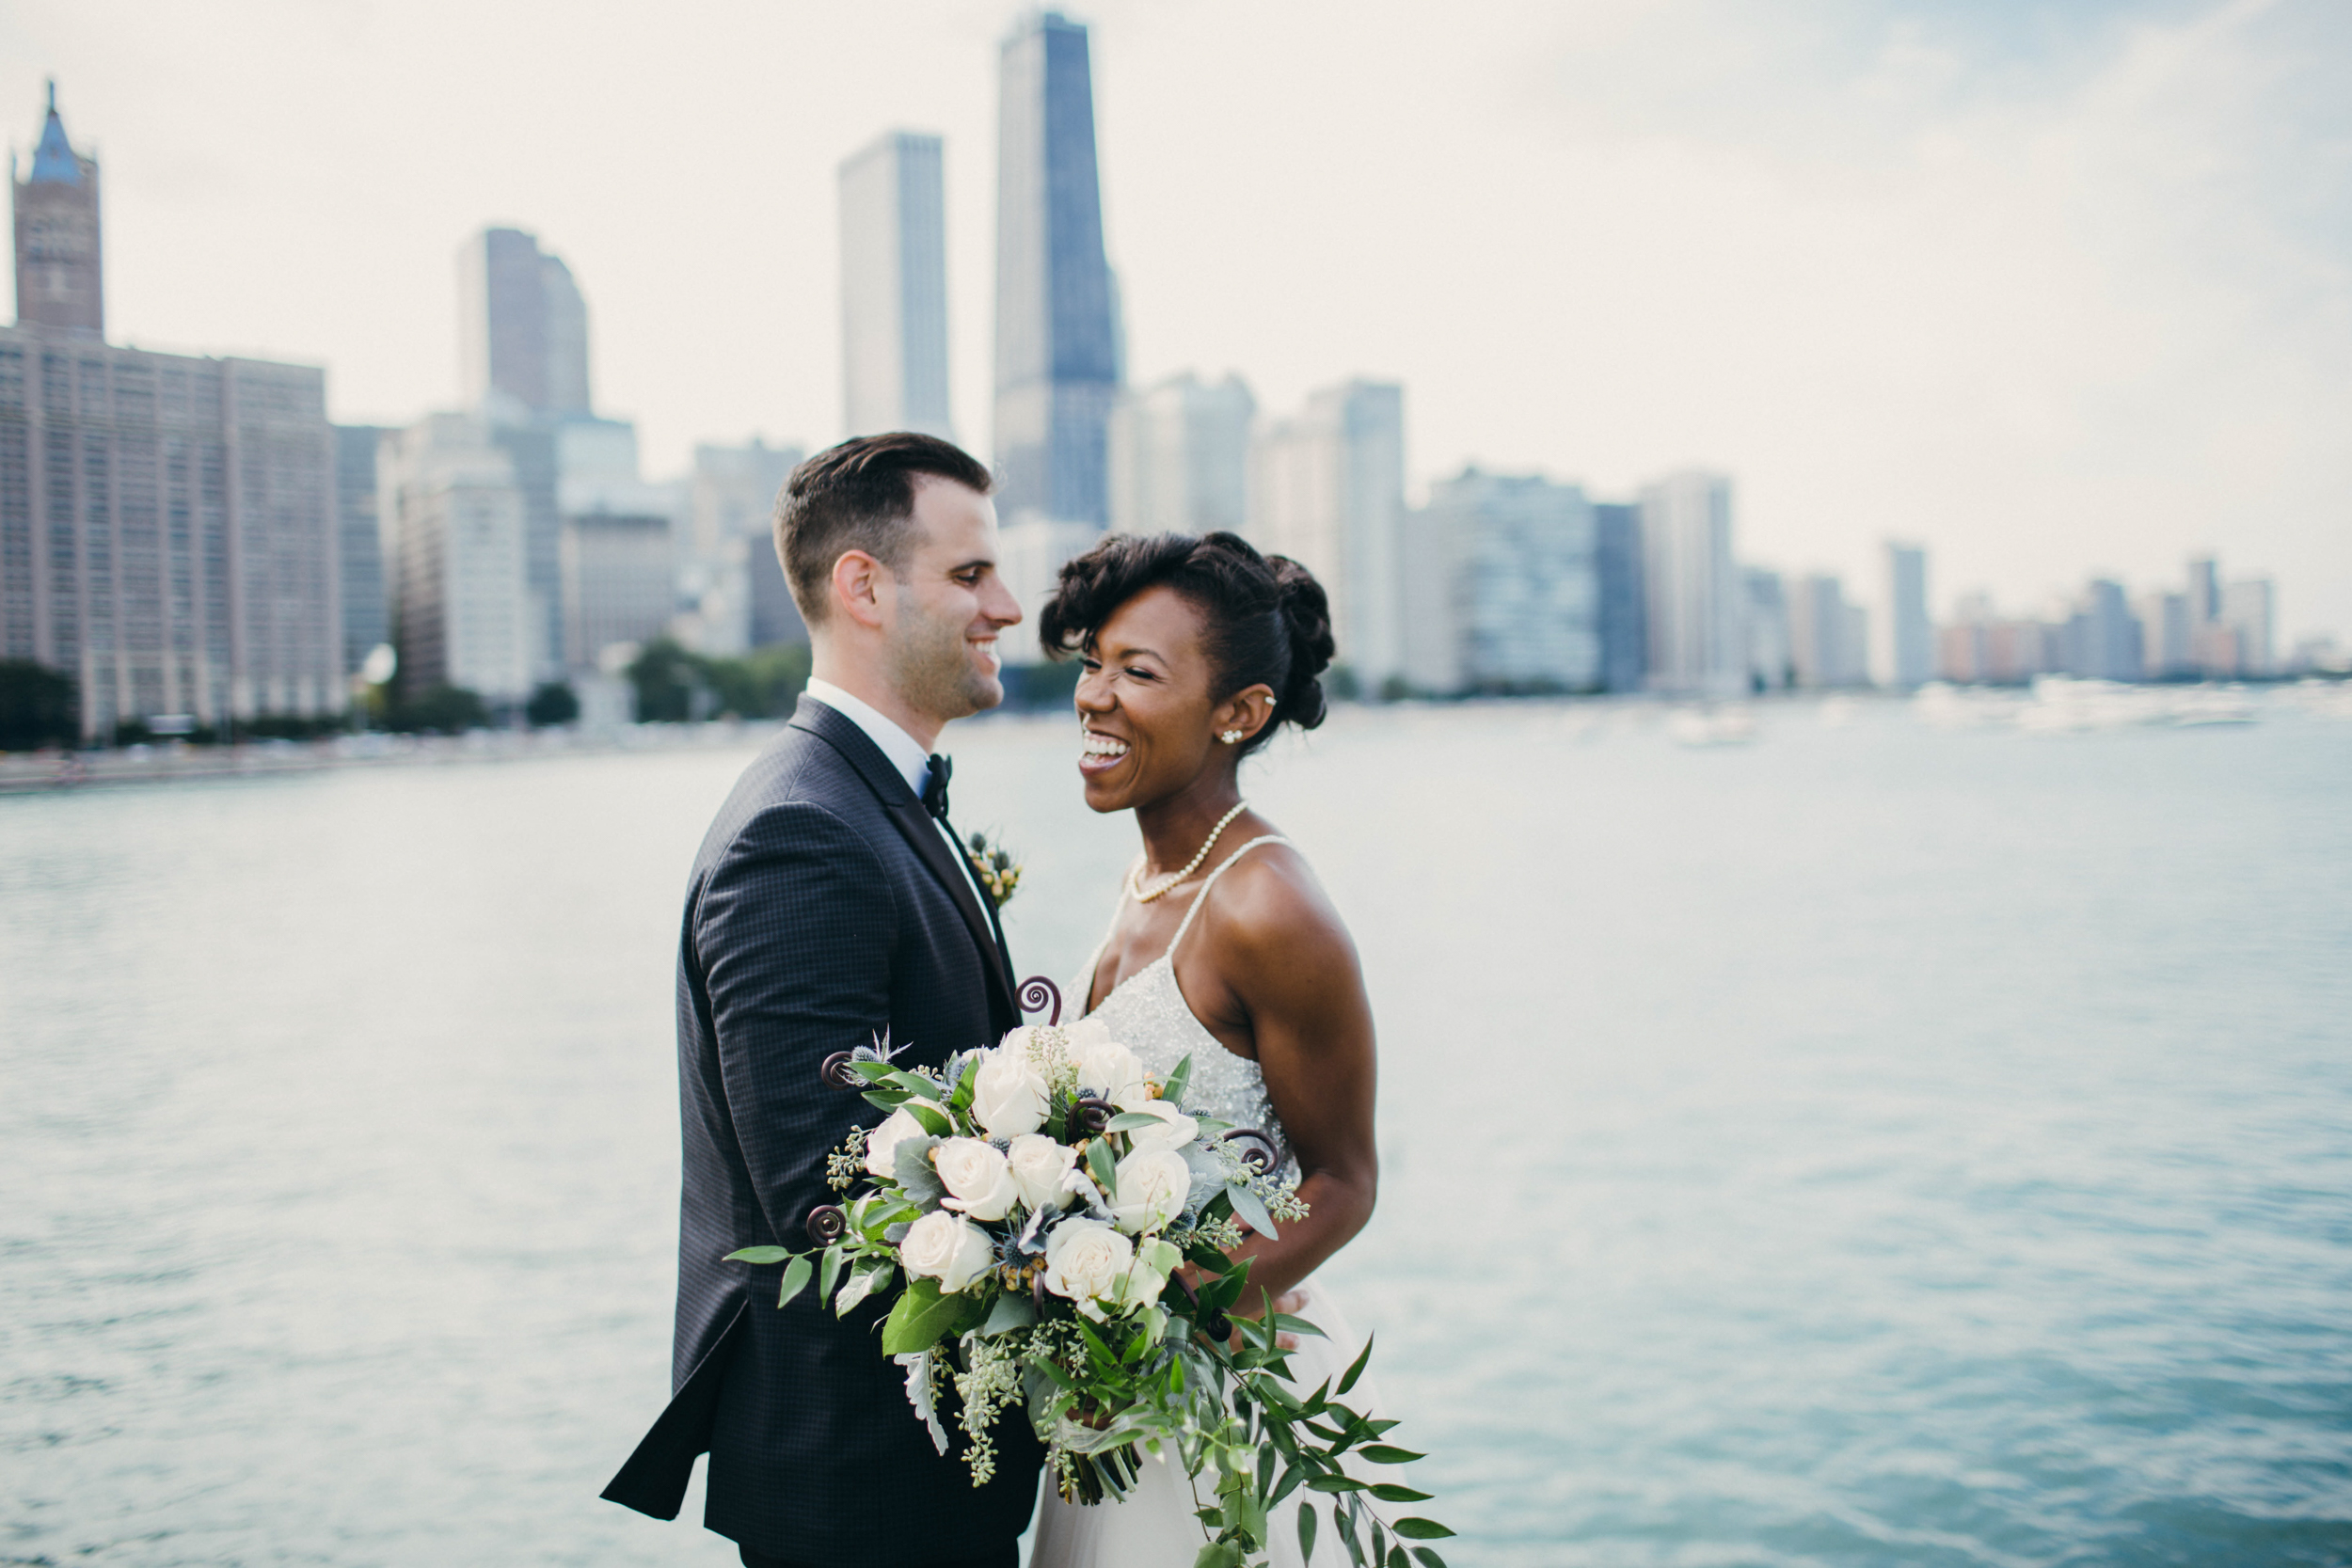 chicago.wedding.urban.intimate.zed451.lake.milton olive park-86.jpg